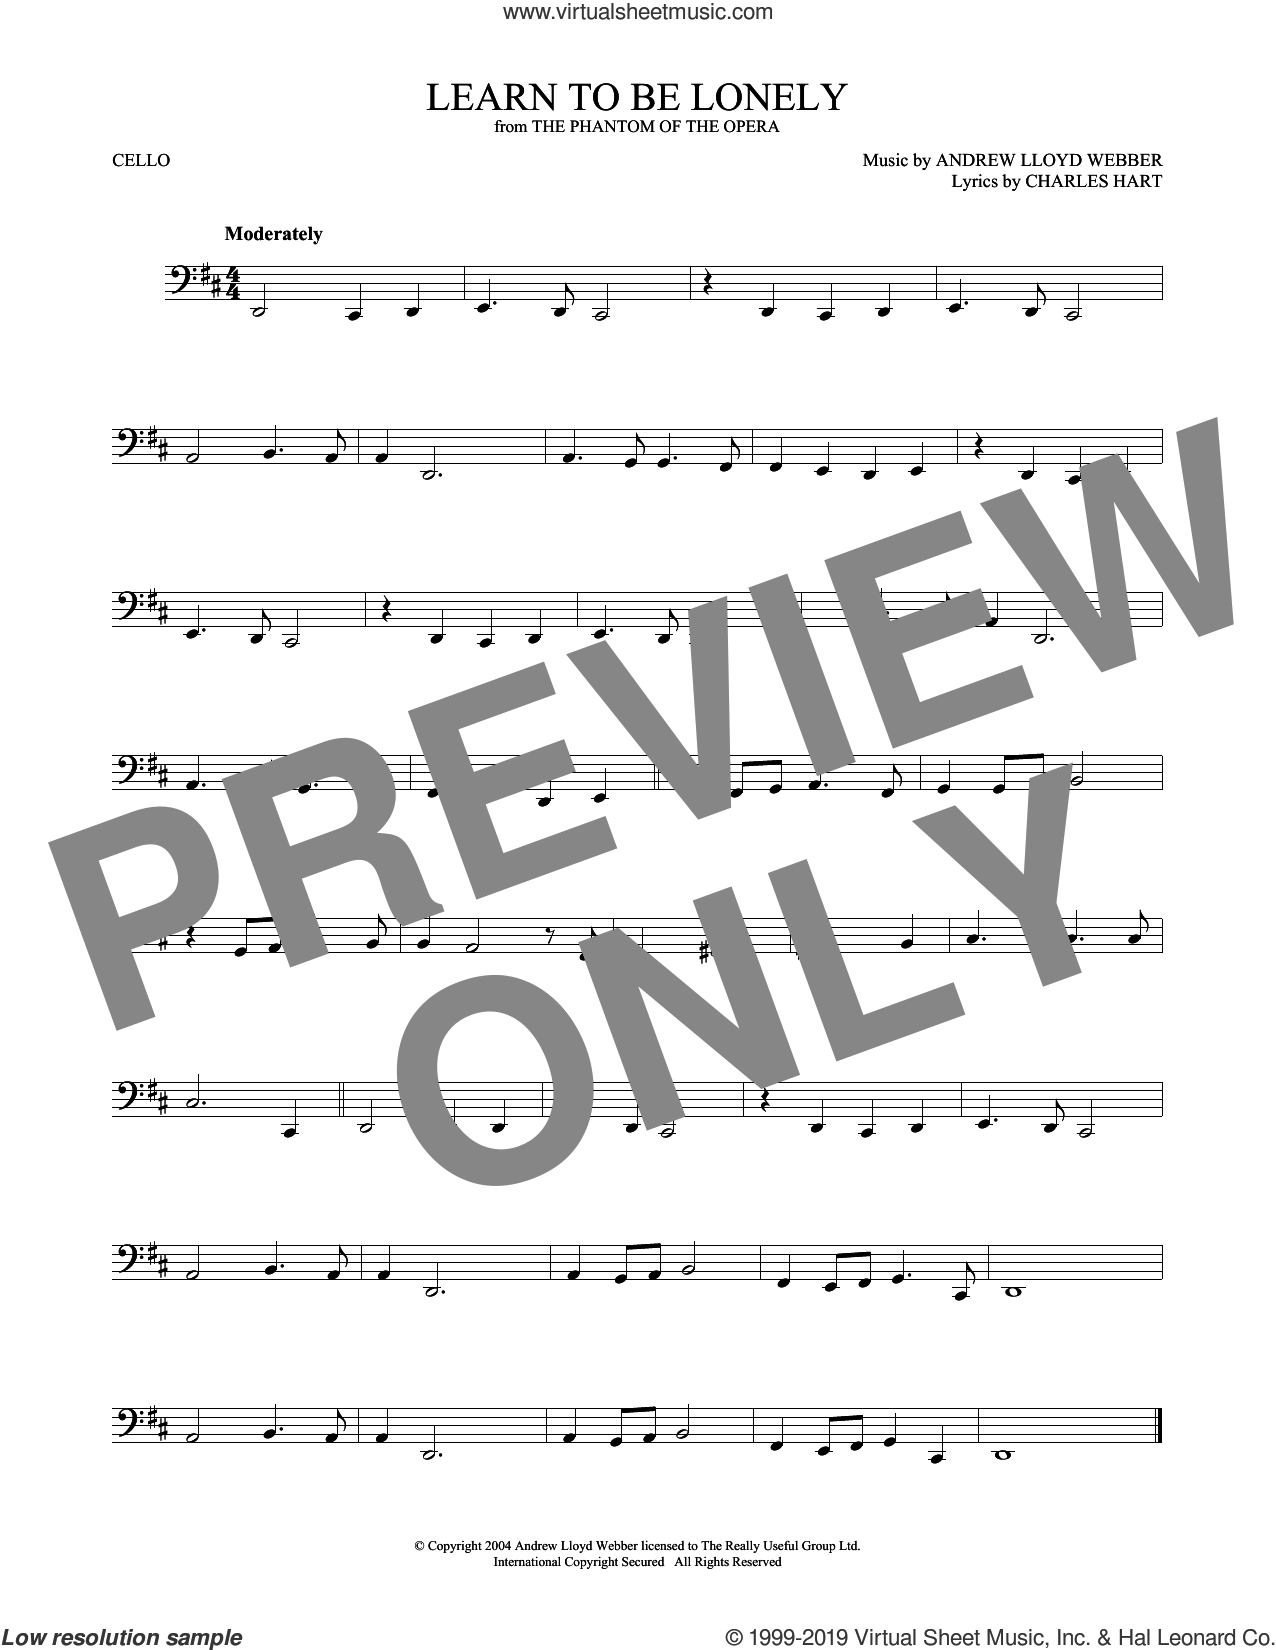 Learn To Be Lonely (from The Phantom Of The Opera) sheet music for cello solo by Andrew Lloyd Webber and Charles Hart, intermediate skill level